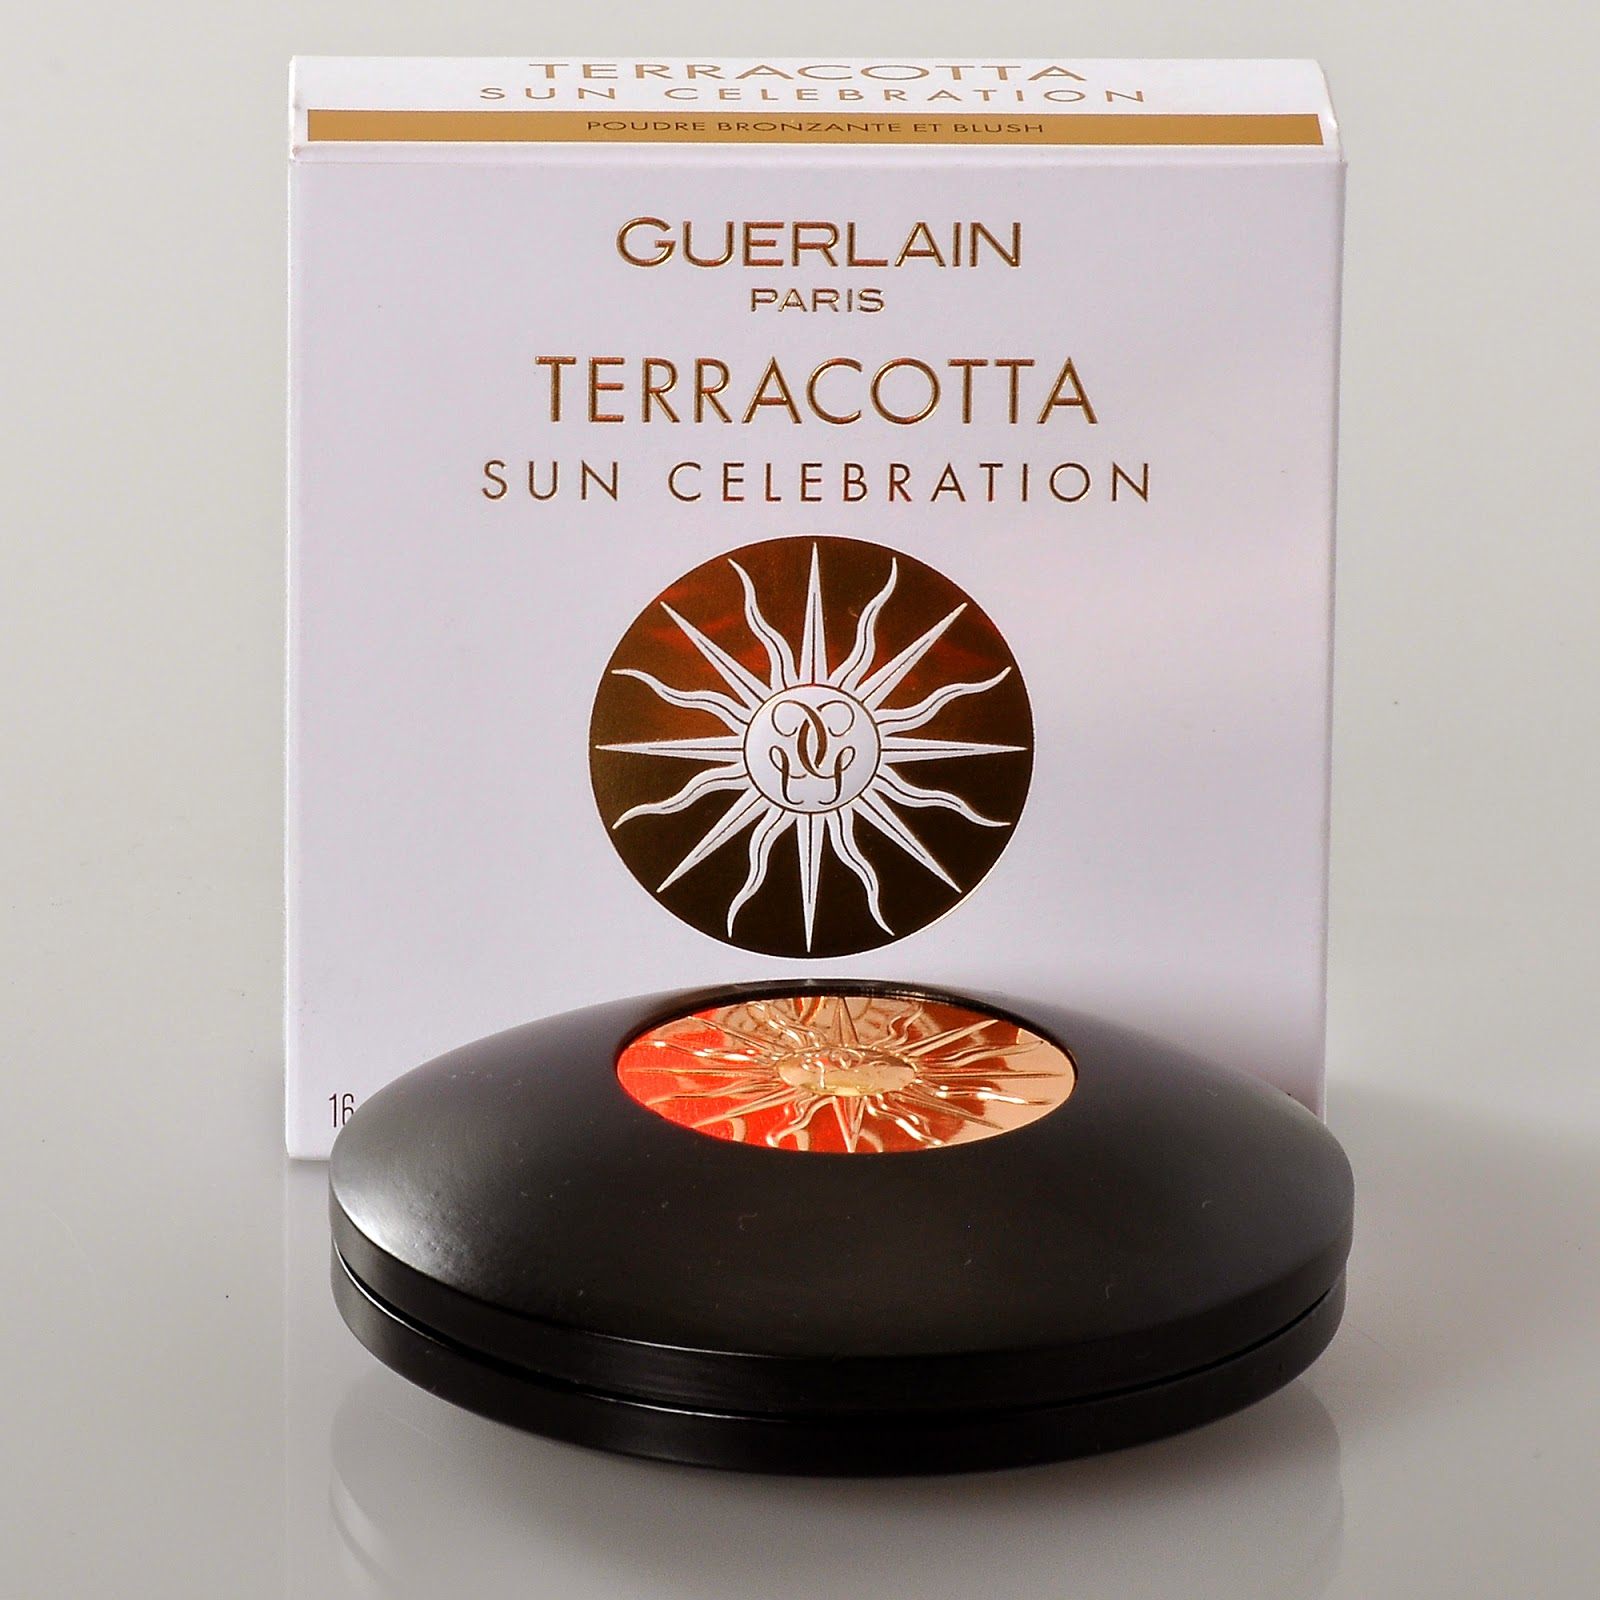 Guerlain 'Terracotta Sun Celebration' Bronzing Powder